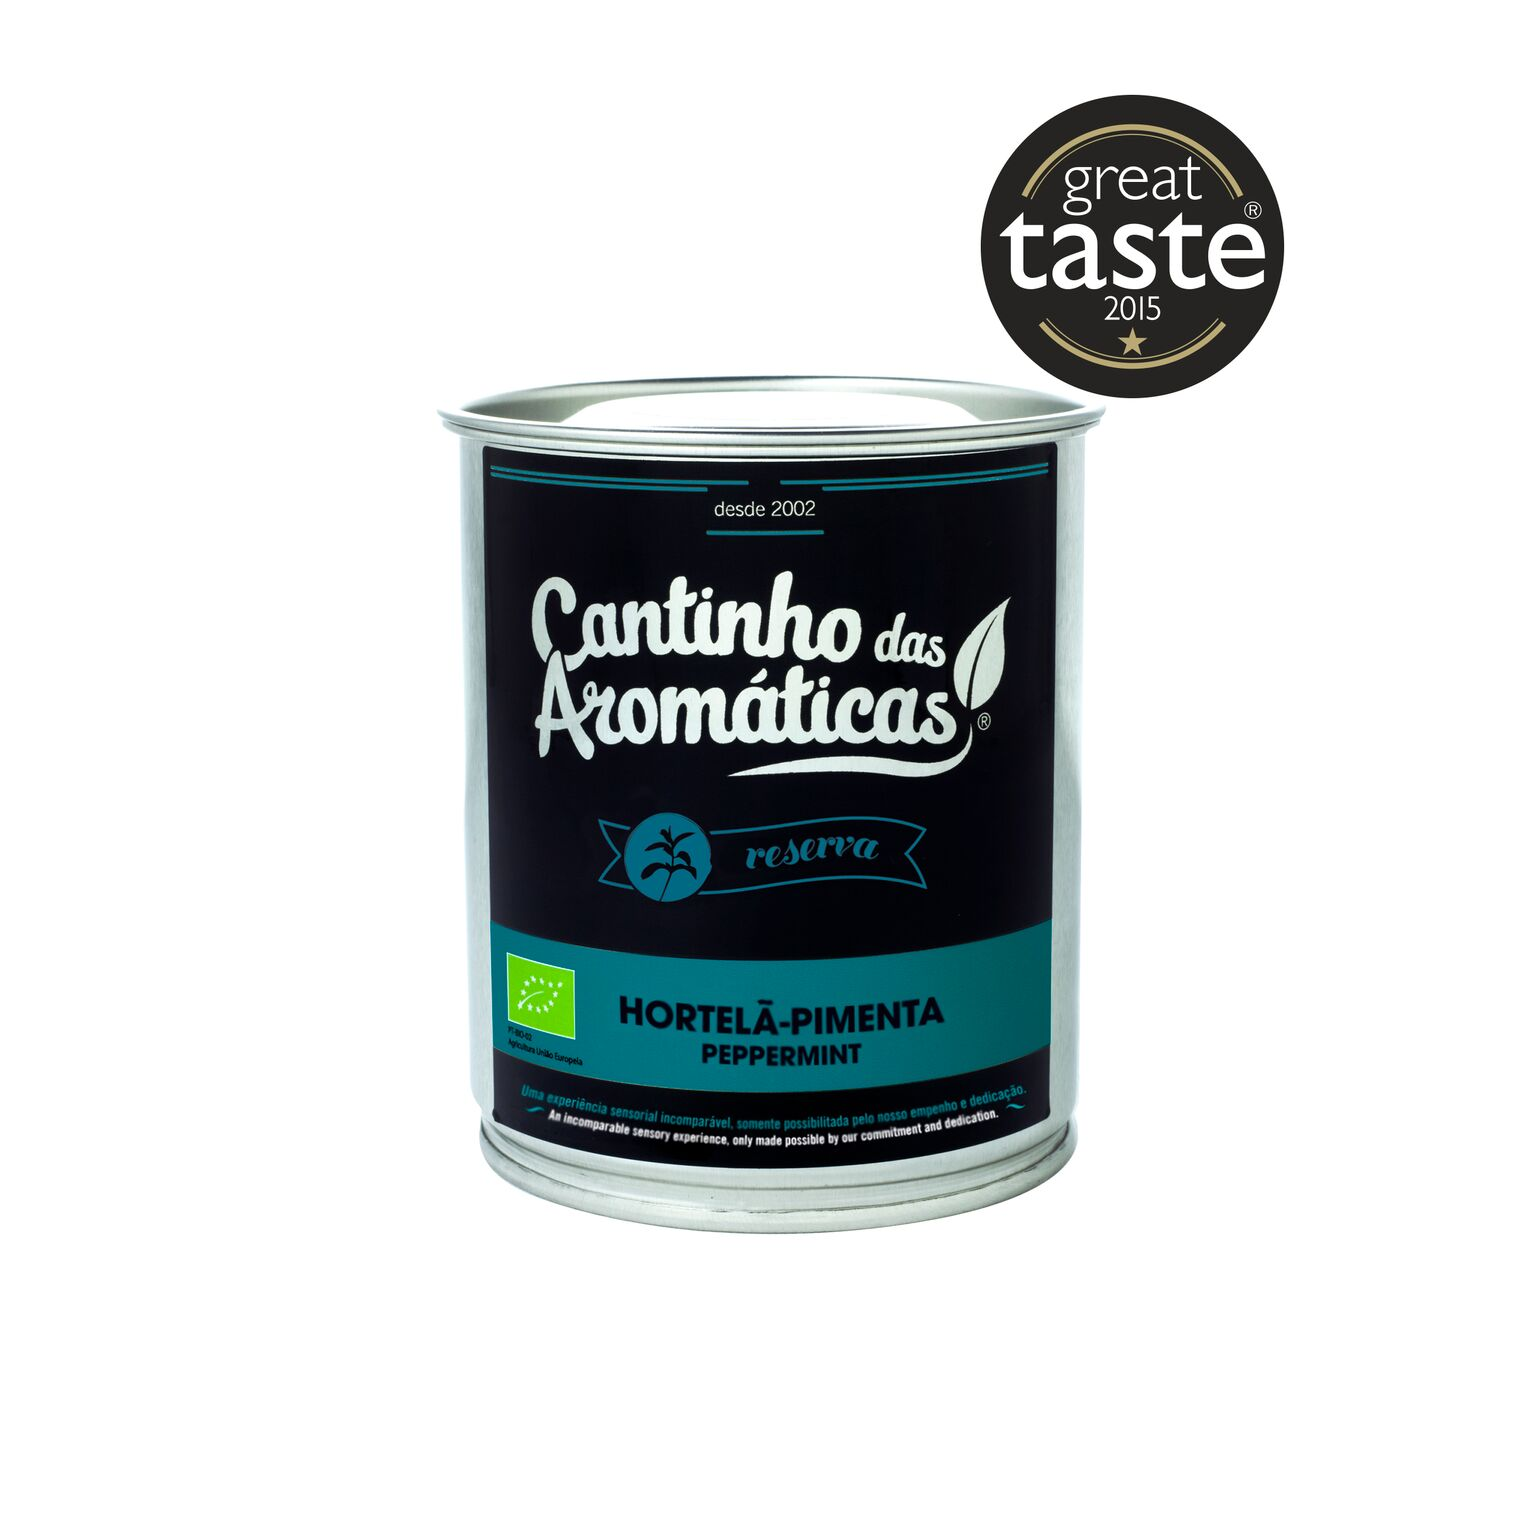 http://www.cantinhodasaromaticas.pt/loja/infusoes-lote-reserva/